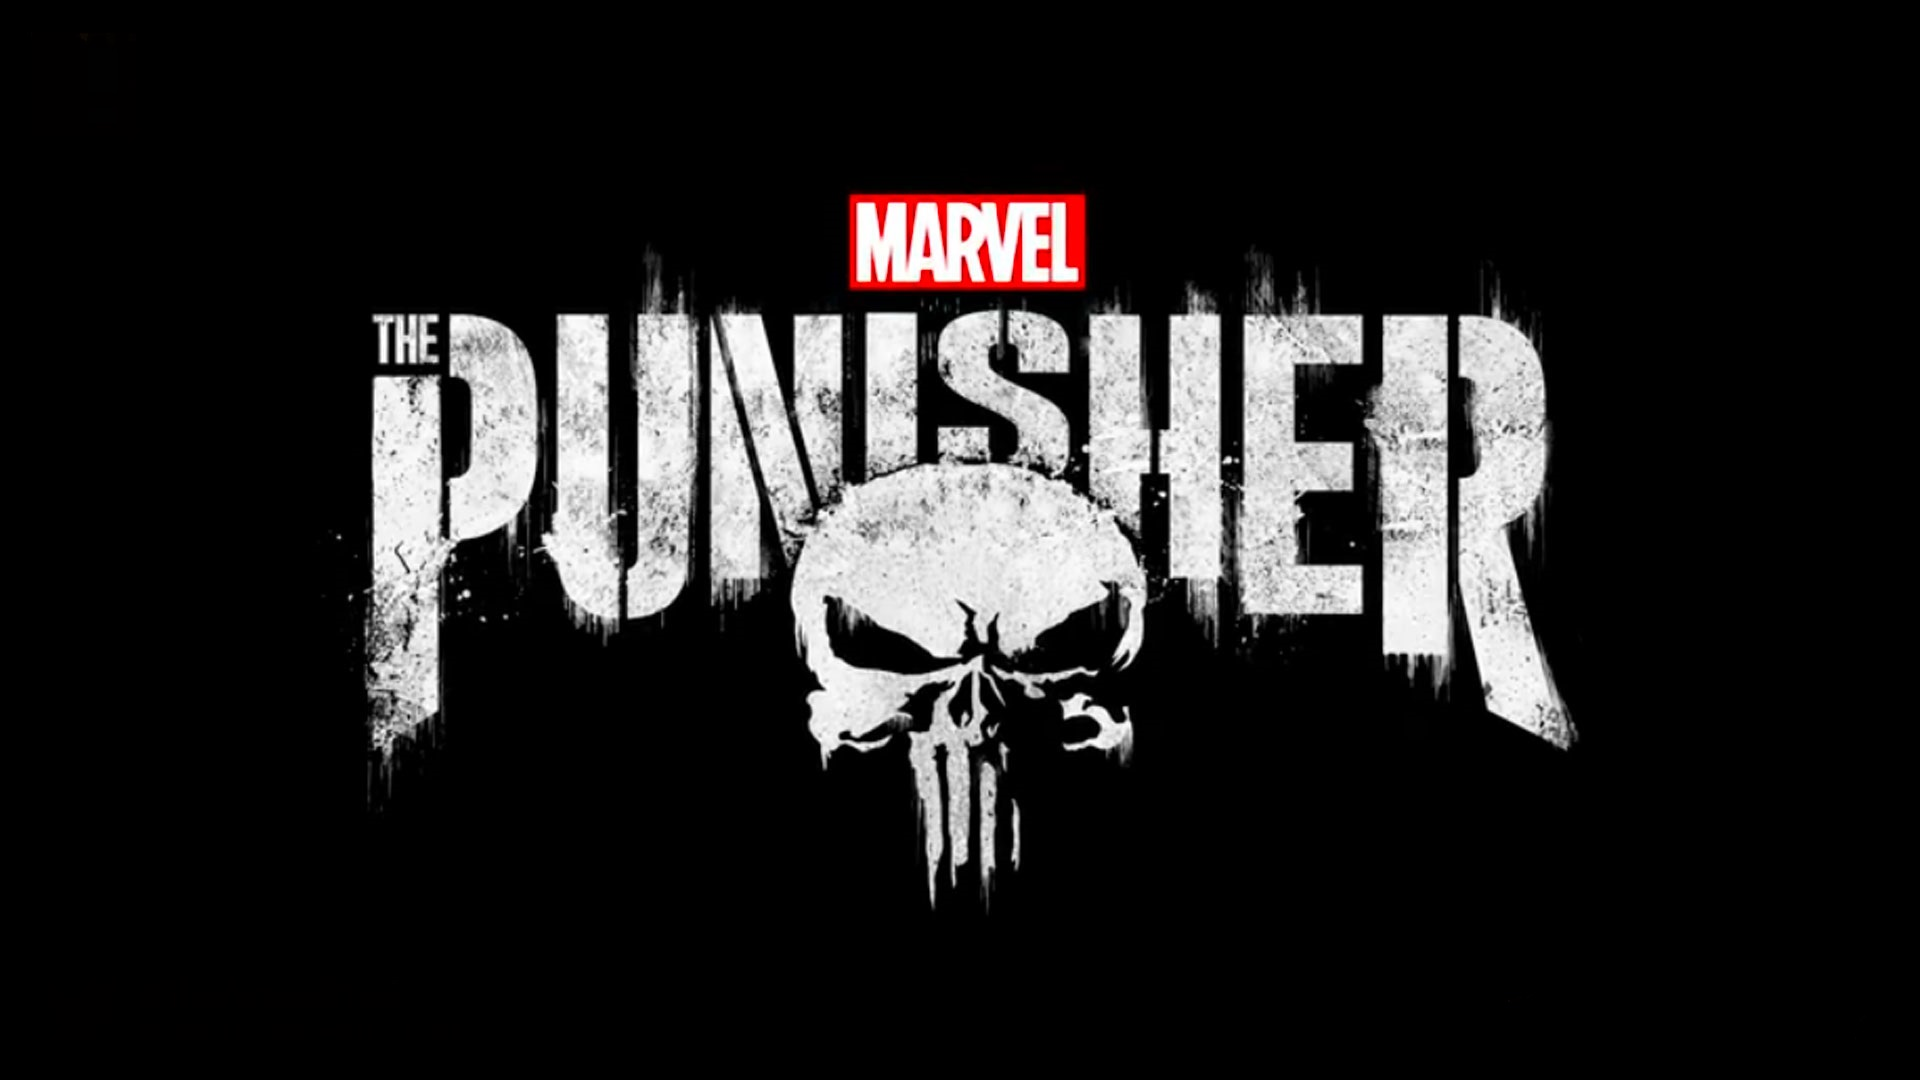 the punisher official logo hd wallpaper background image